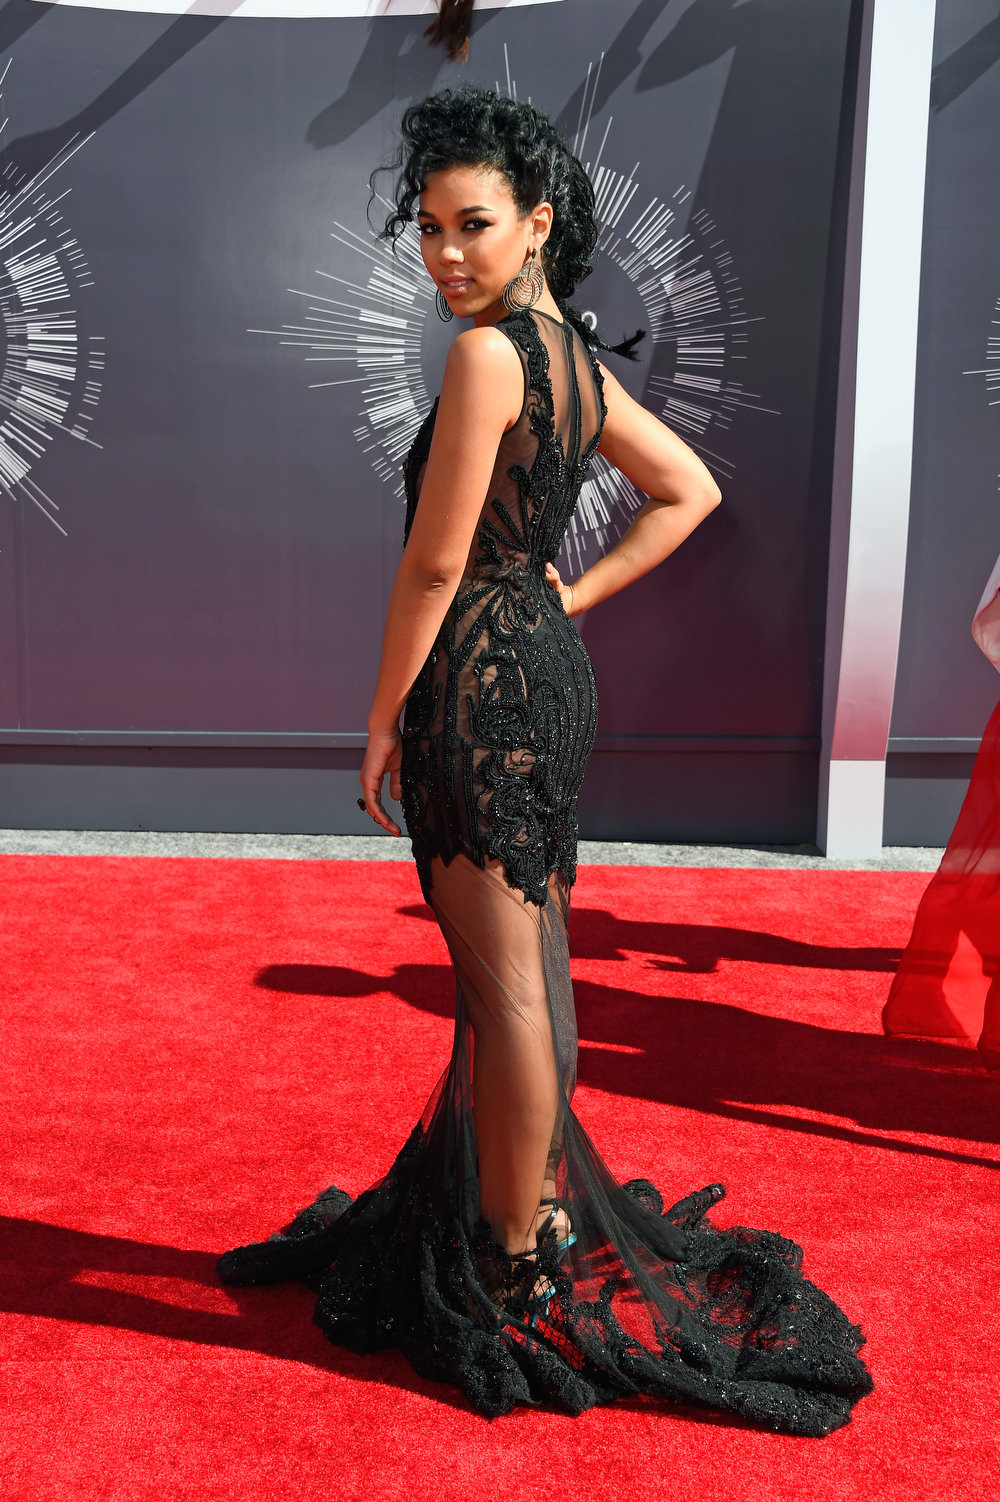 . Actress Alexandra Shipp attends the 2014 MTV Video Music Awards at The Forum on August 24, 2014 in Inglewood, California.  (Photo by Frazer Harrison/Getty Images)